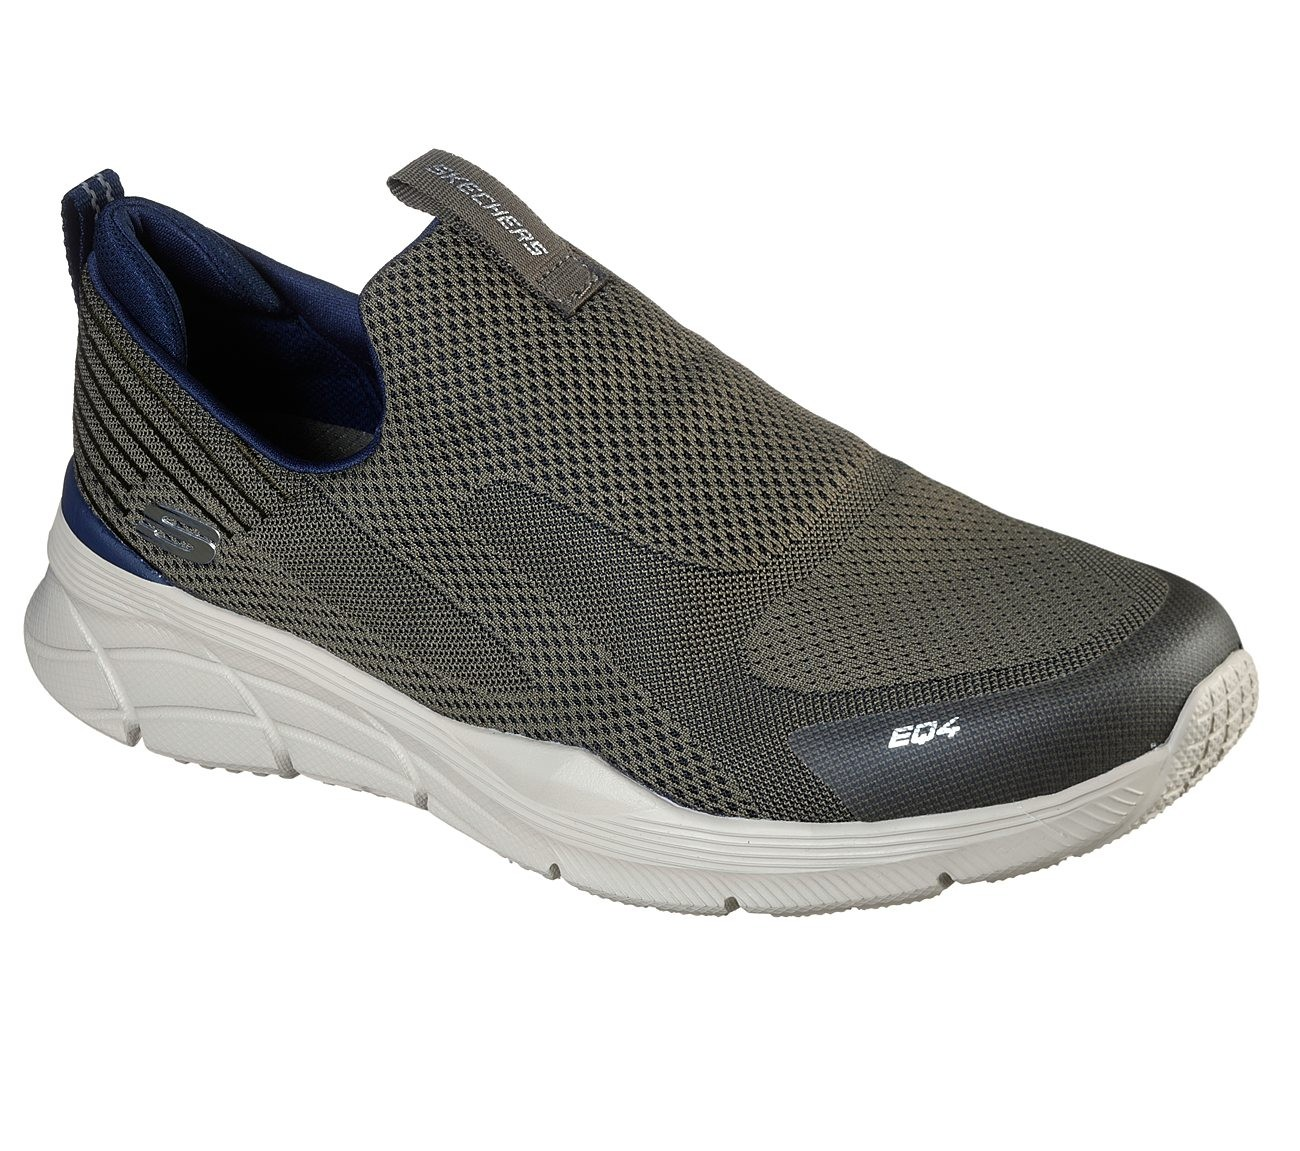 Mens Relaxed Fit Equalizer 4.0 - Baylock